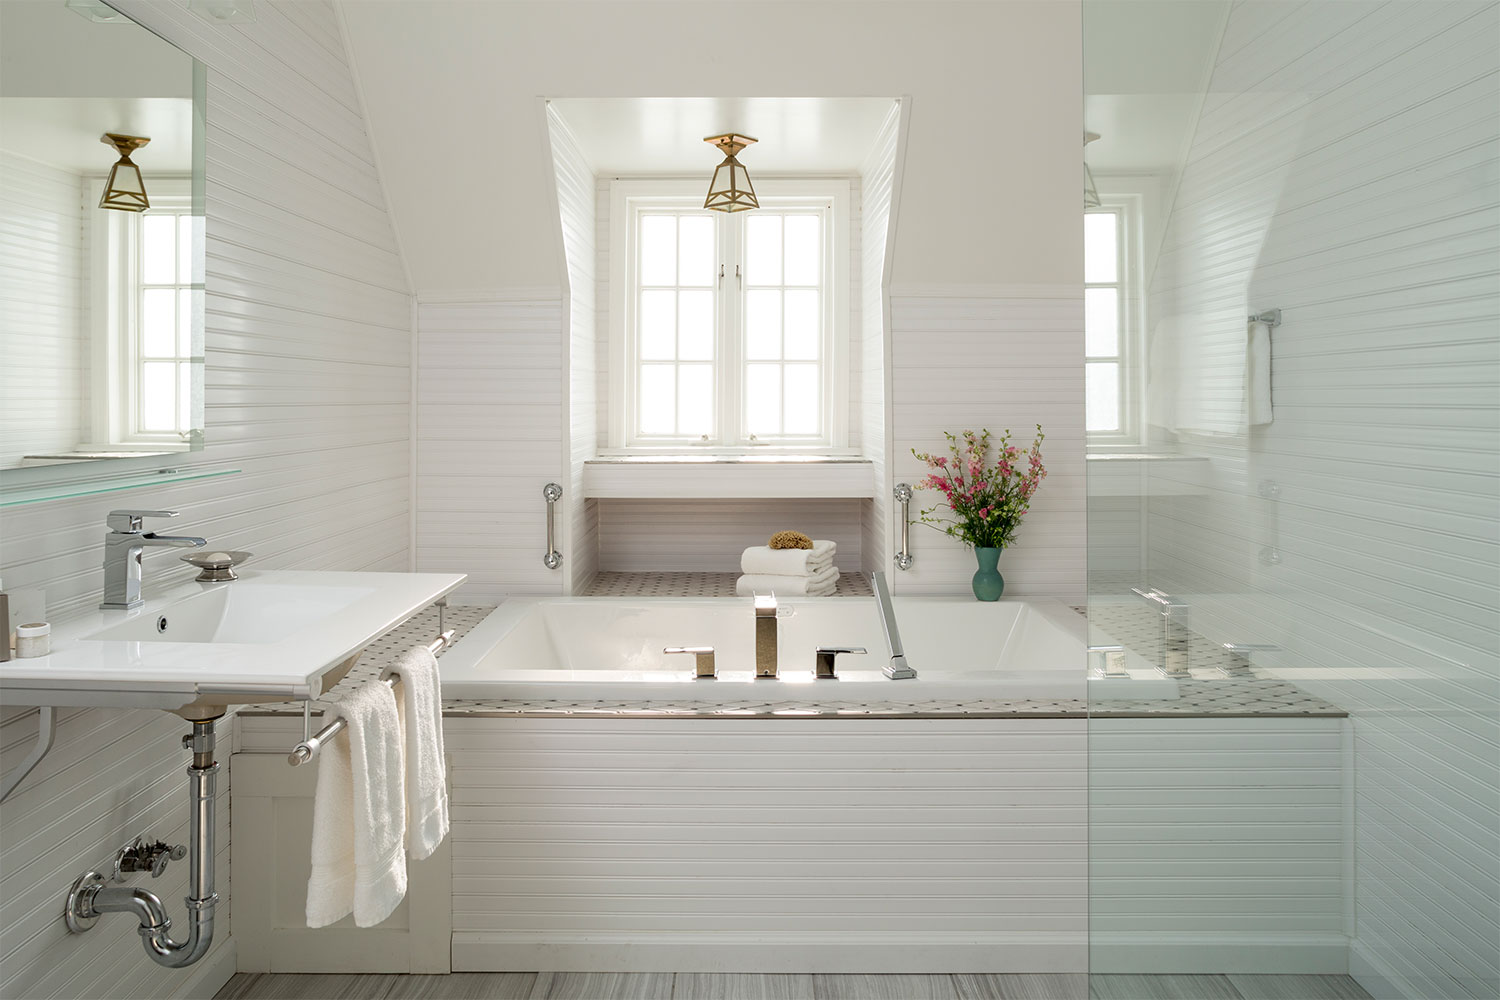 5 Easy Upgrades To Take Your Bathroom To The Next Level